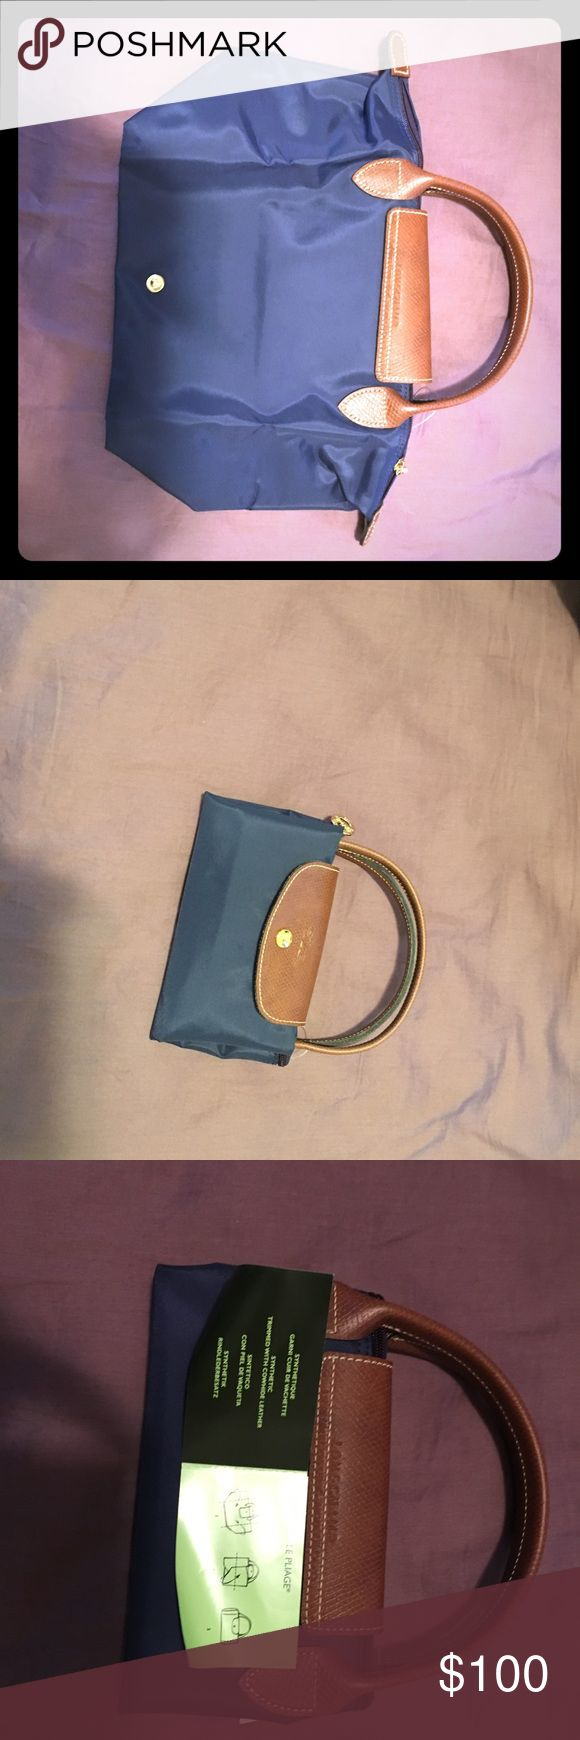 LONGCHAMP Le Pliage bag BRAND NEW Never been used LONG CHAMP bag in navy color. Authentic bag. 9 1/4 x 8 1/4 x 5 1/2 size. Longchamp Bags Totes